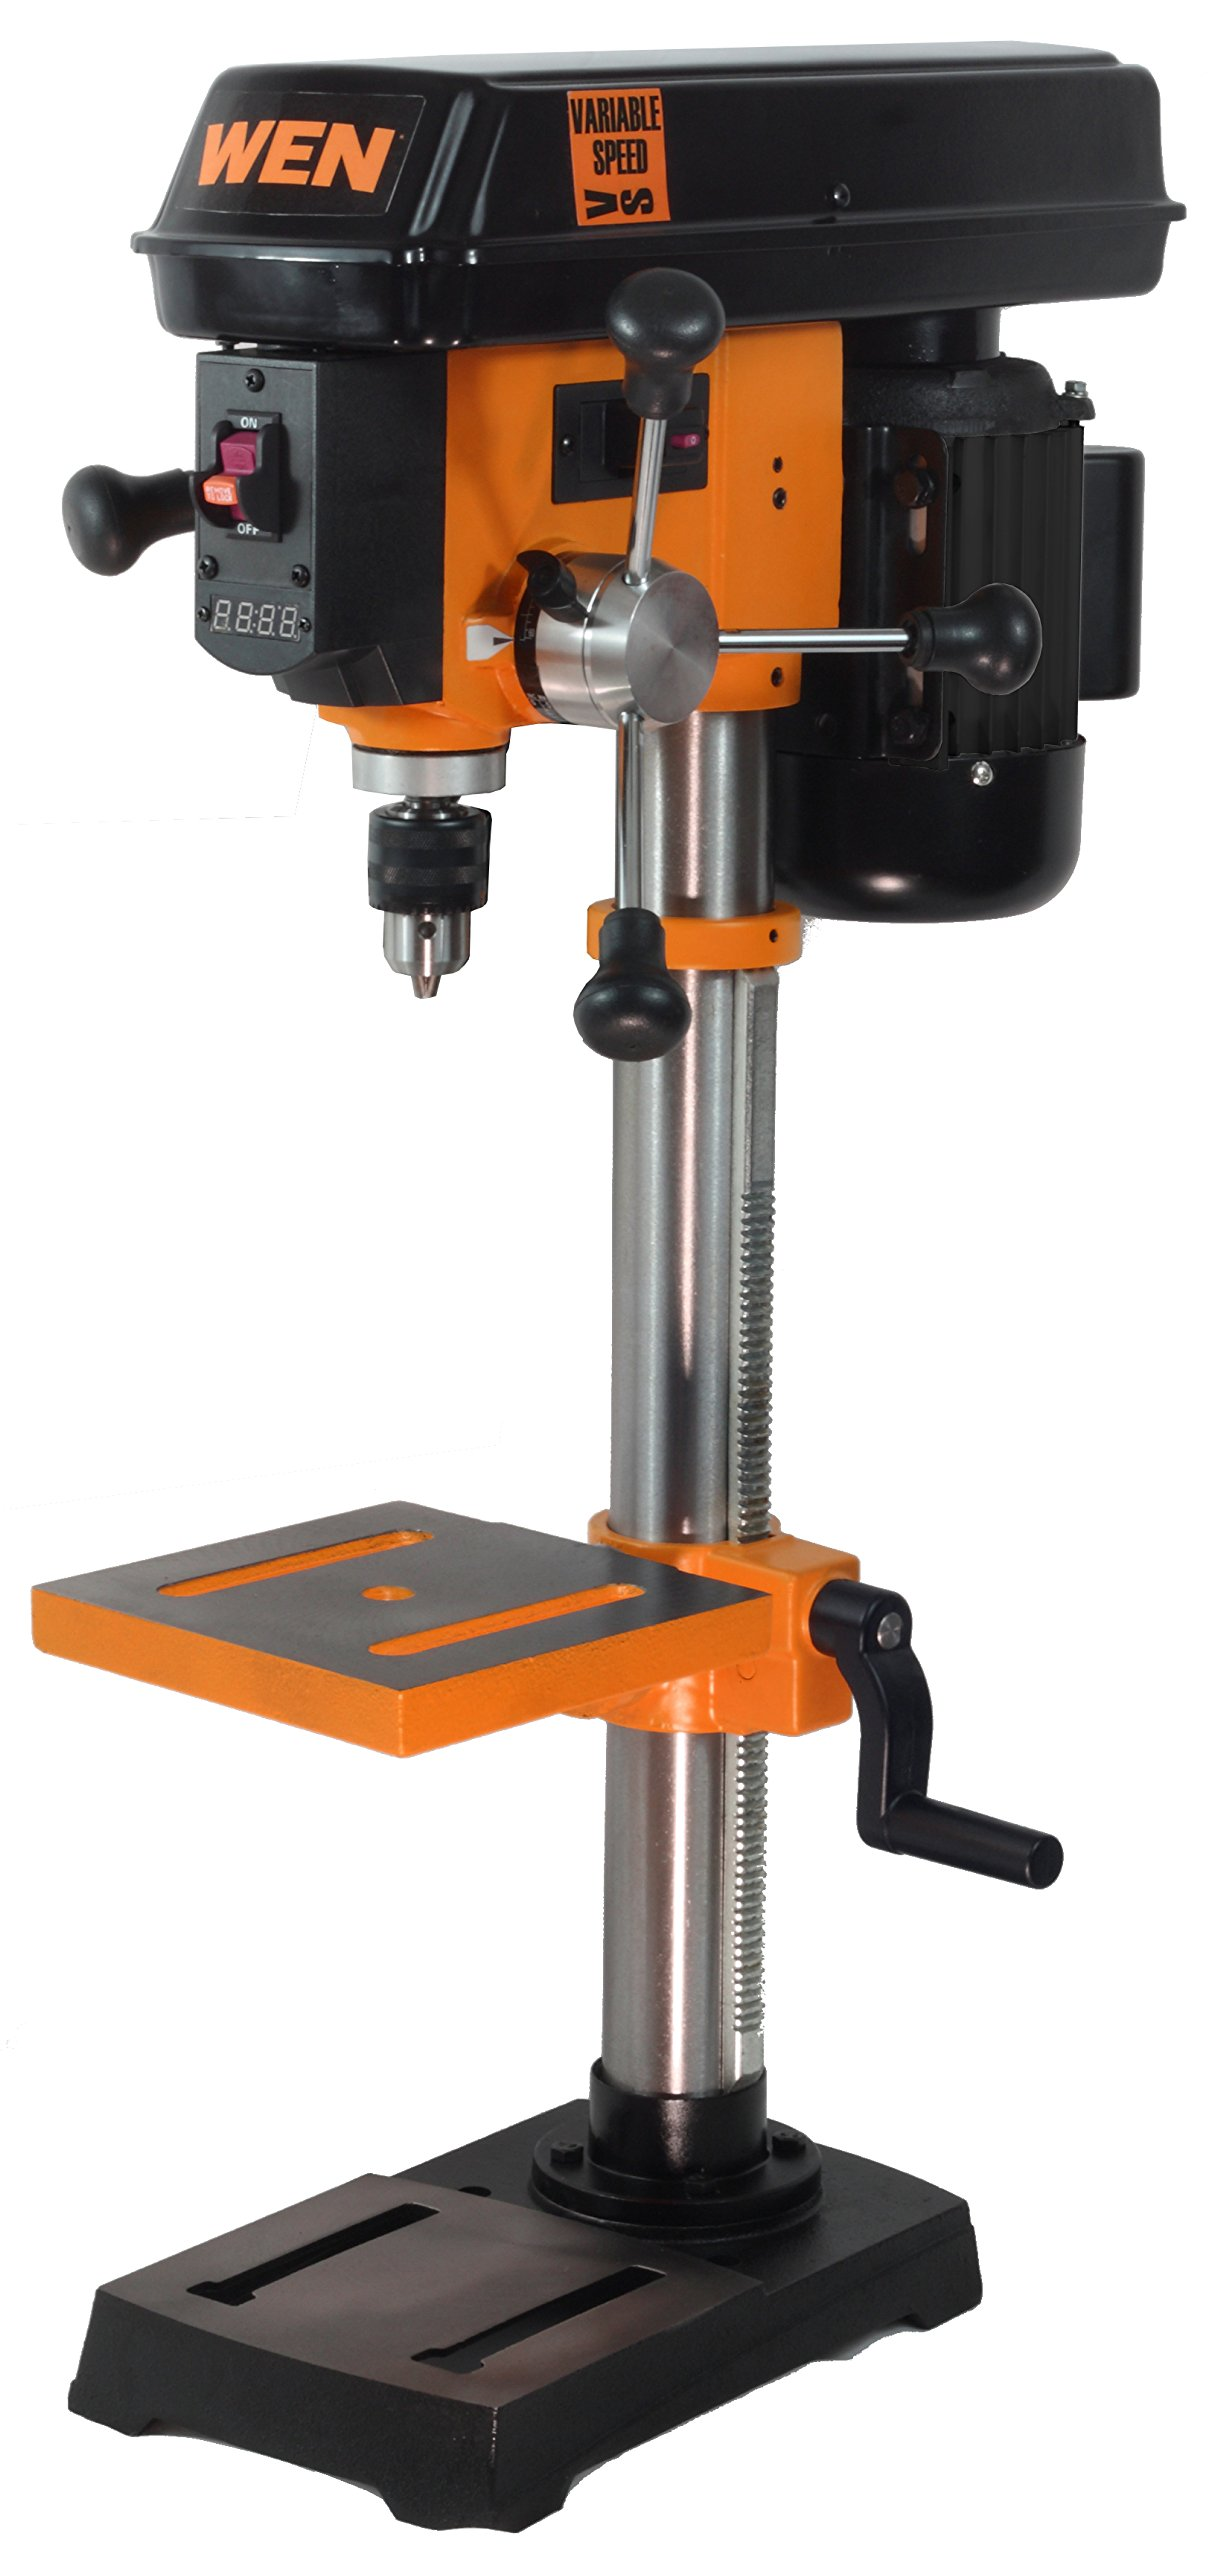 WEN 4212 10-Inch Variable Speed Drill Press by WEN